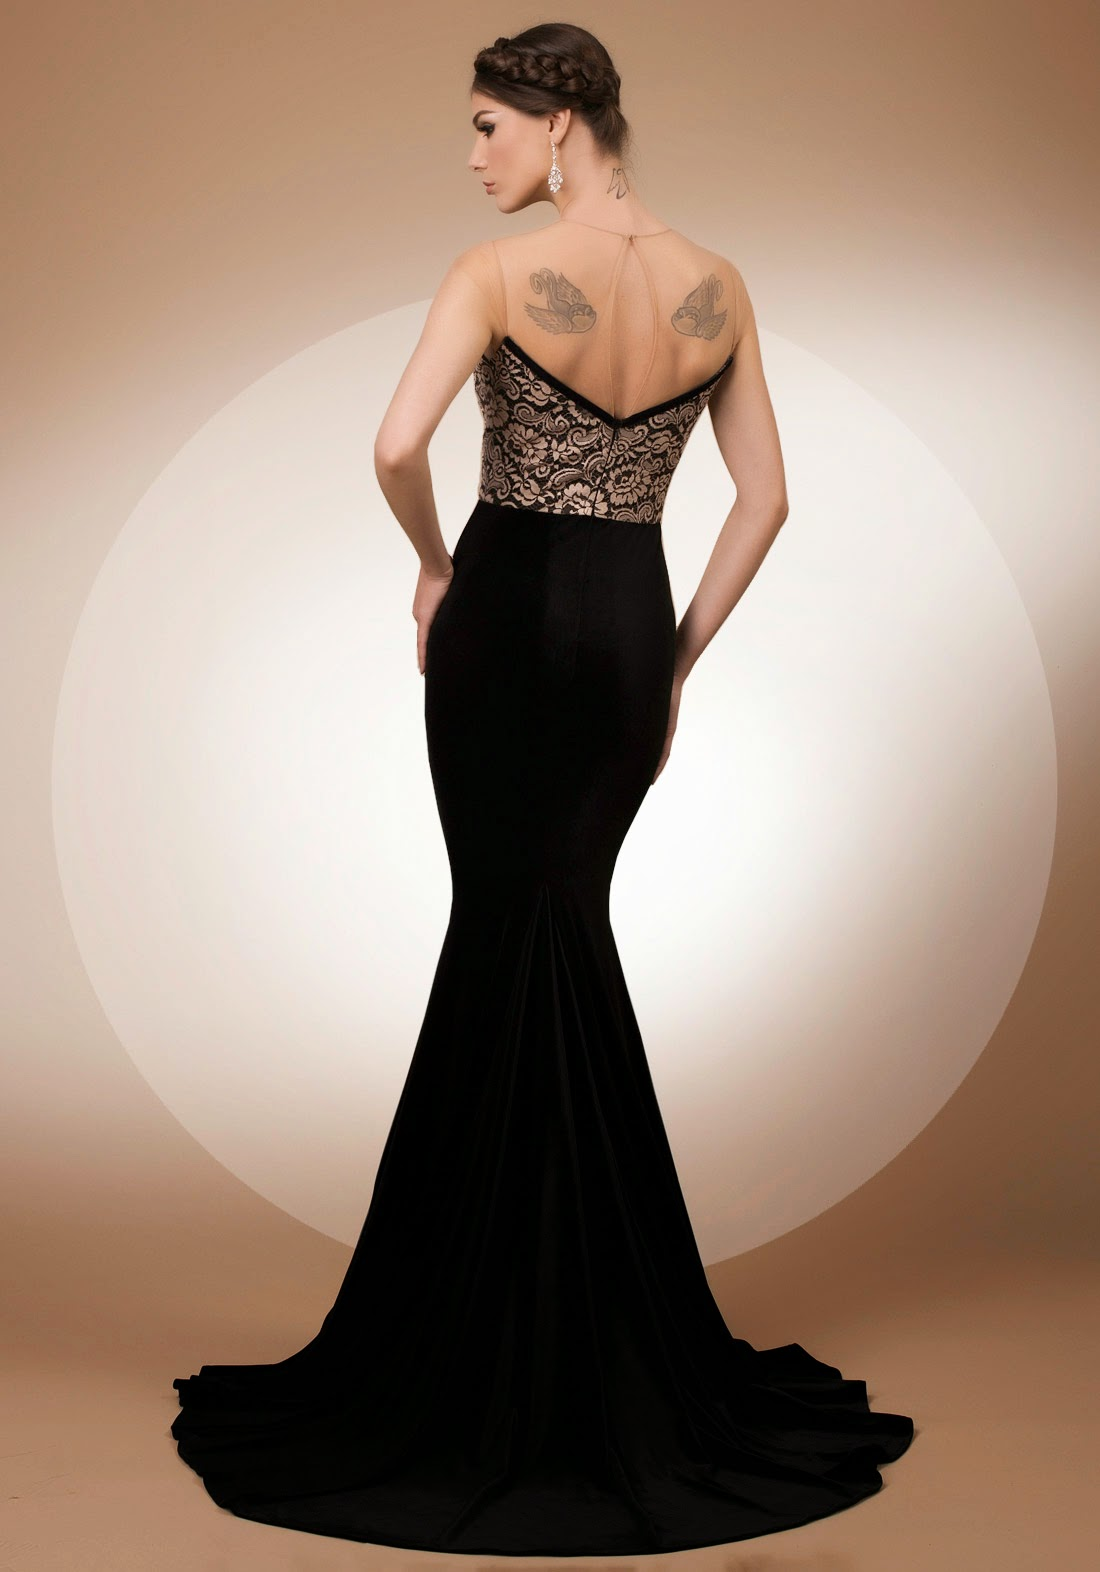 My Secret Lover, mermaid velvet and Solstiss lace evening dress with portrait back, Bien Savvy My Secret collection